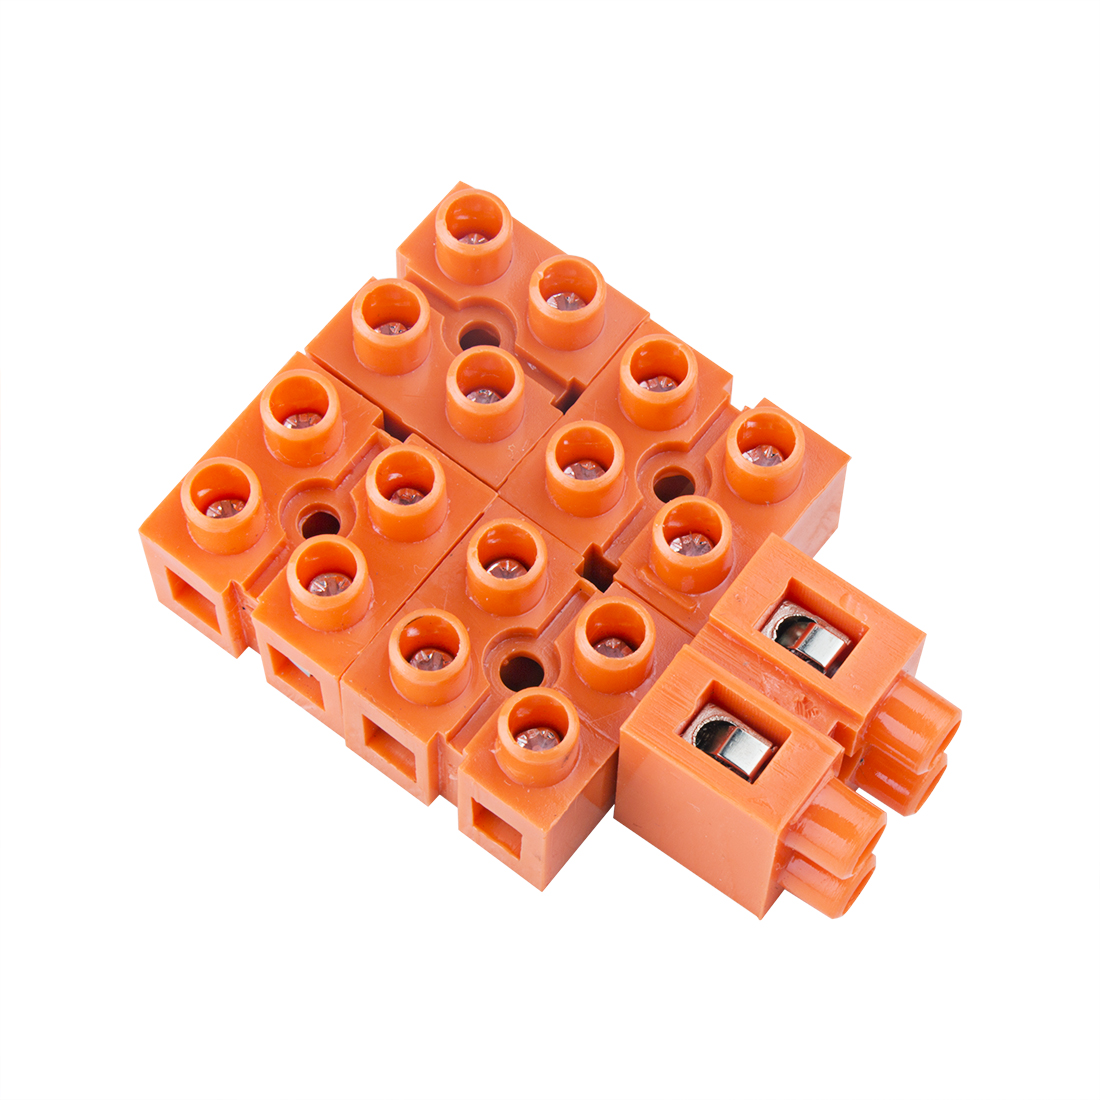 5pcs 600V 36A Dual Row 2 Positions Screw Terminal Electric Barrier Strip Block